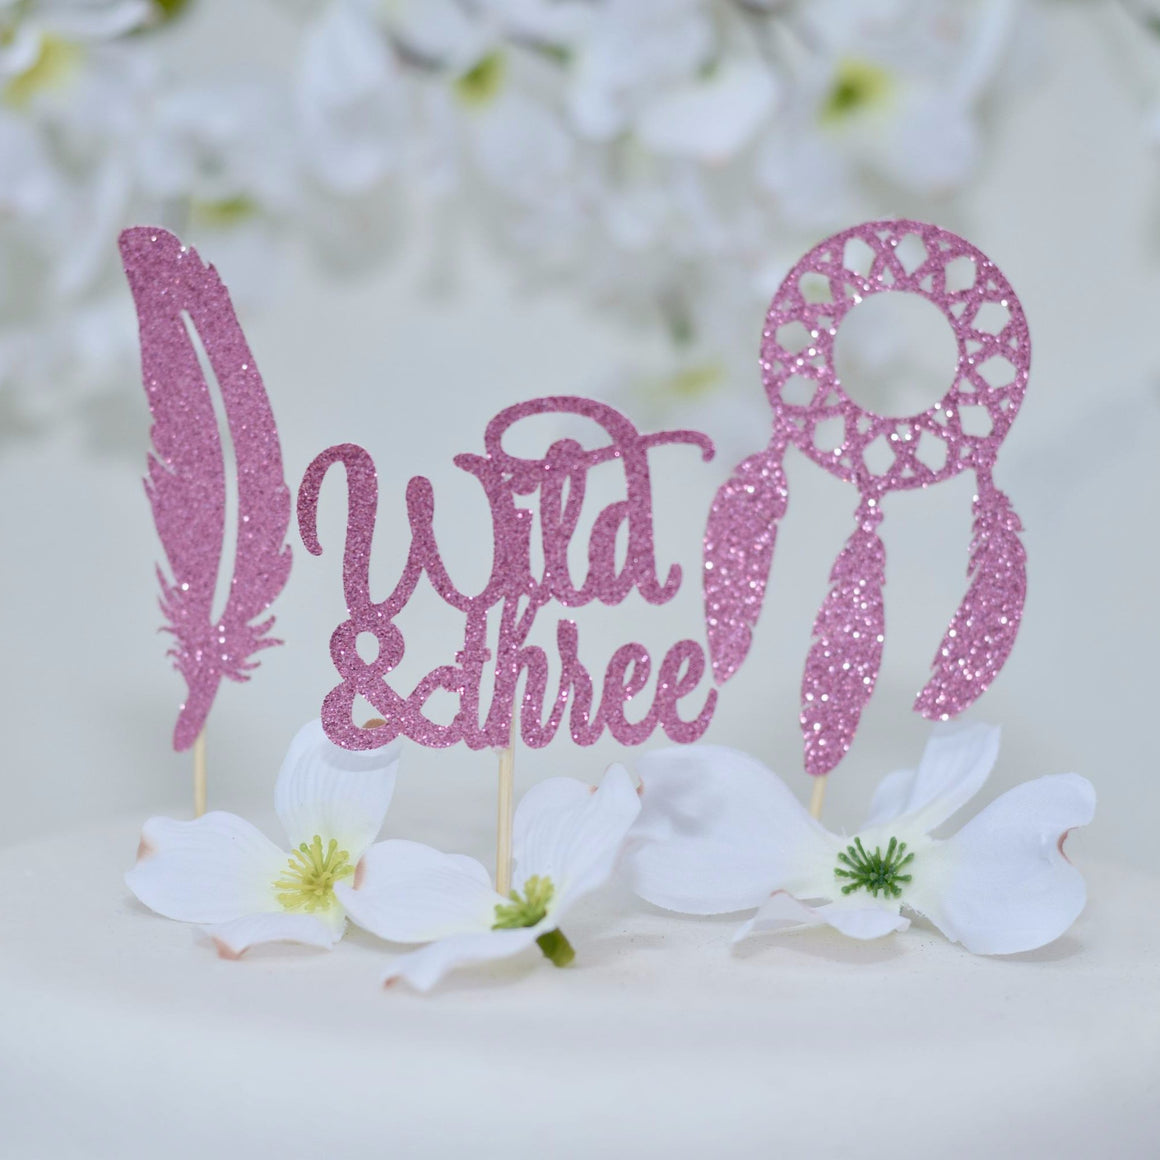 Wild & Three pink sparkle cupcake topper with feather and dream catcher cupcake toppers on a white cake